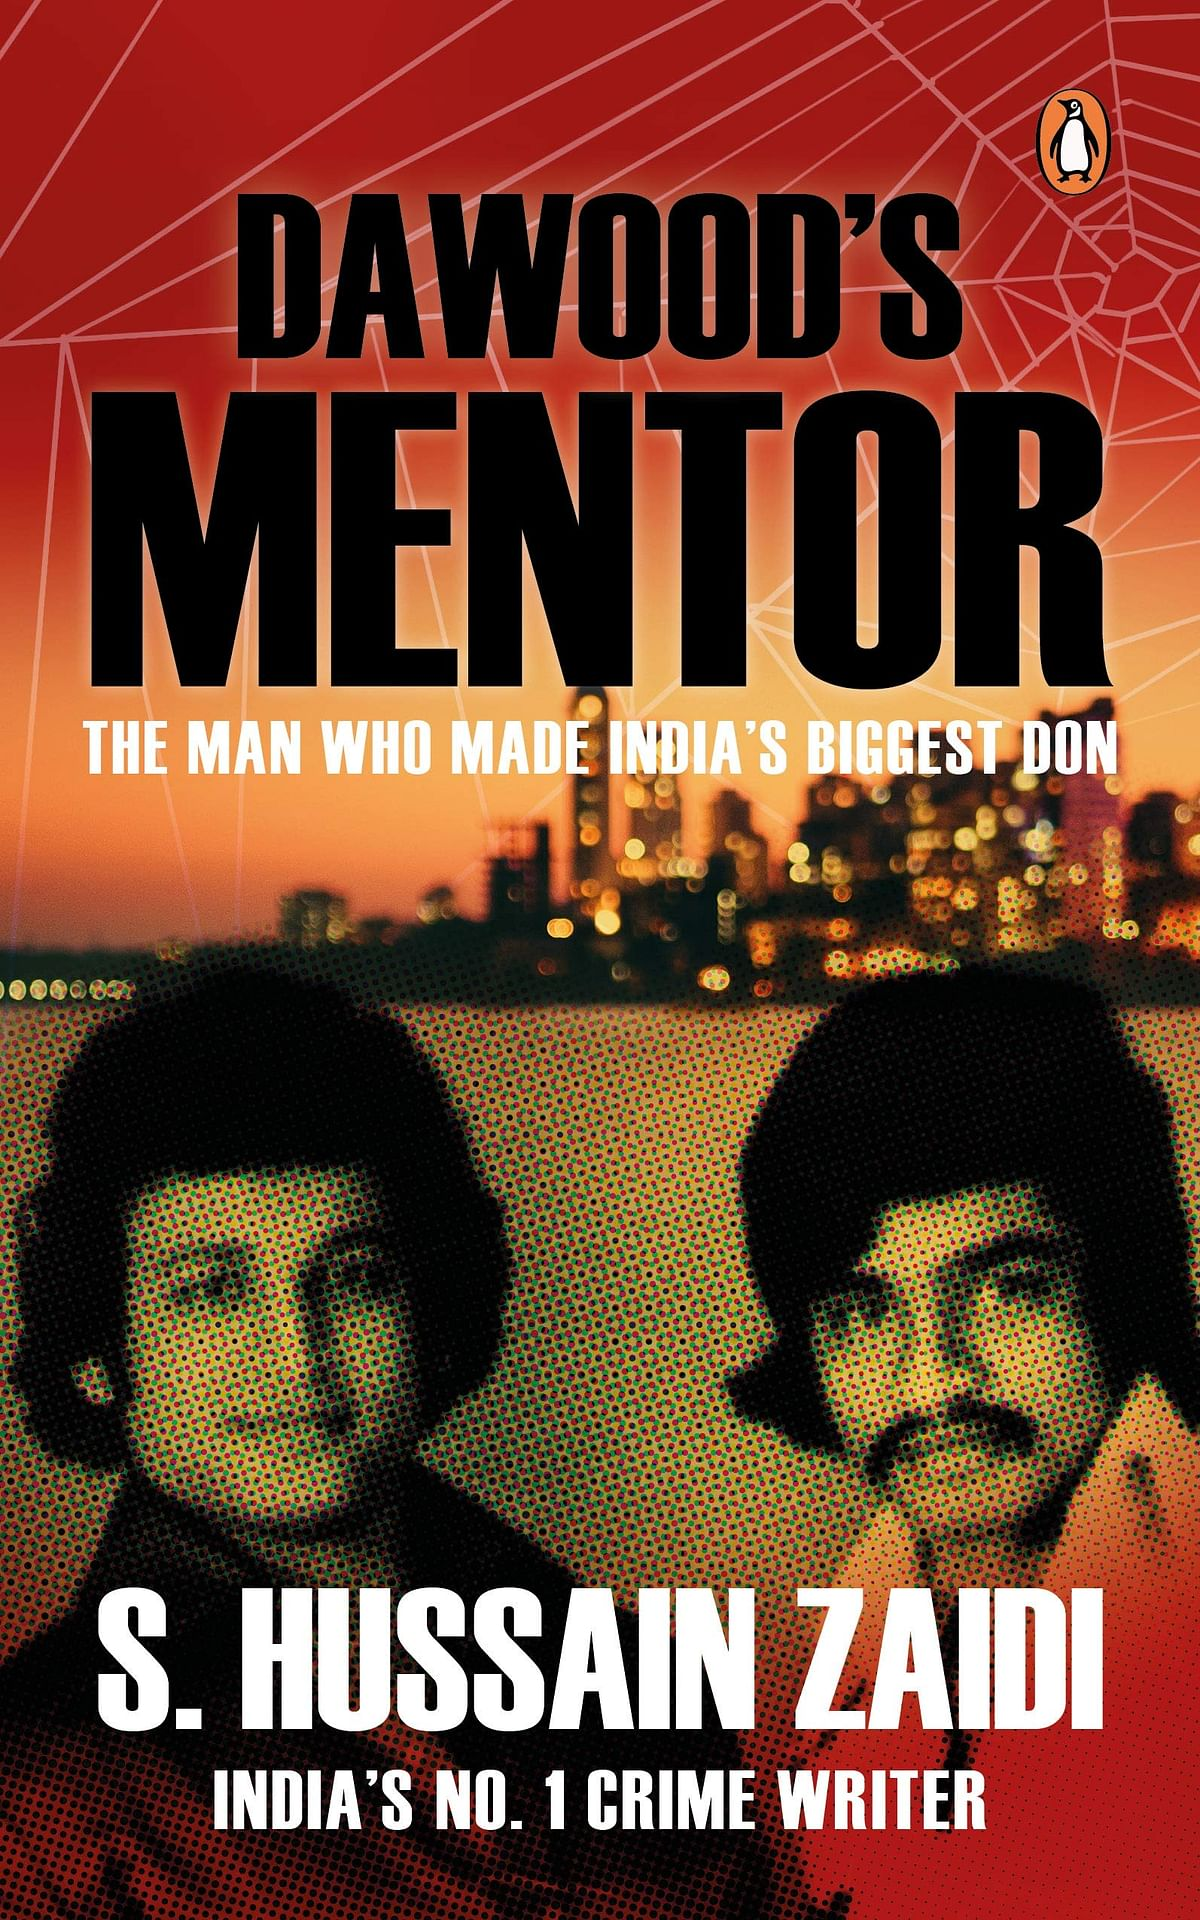 Dawood's Mentor: The Man Who Made India's Biggest Don by S. Hussain Zaidi – Review